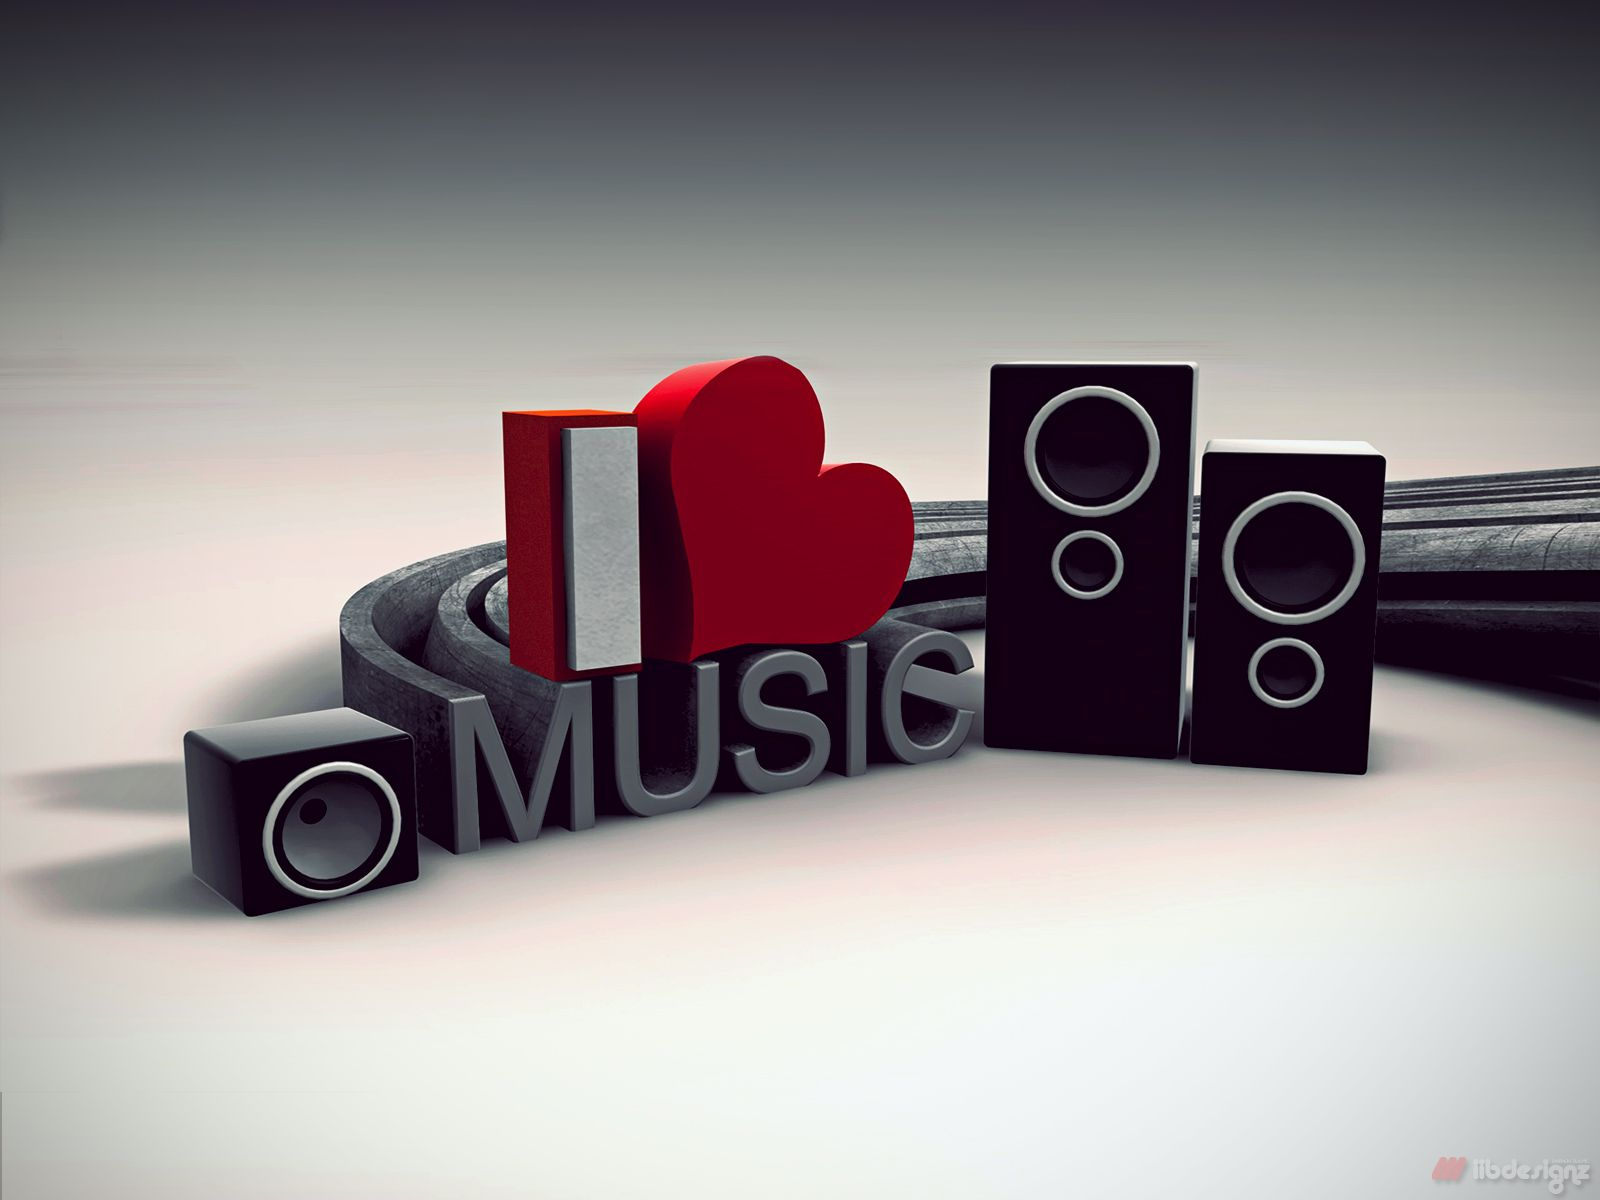 I Love Music 3d Abstact Wallpapers At Http Www Hdwallcloud Com I Love Music 3d Abstact Wallpapers Music Wallpaper Music Speakers Music Images